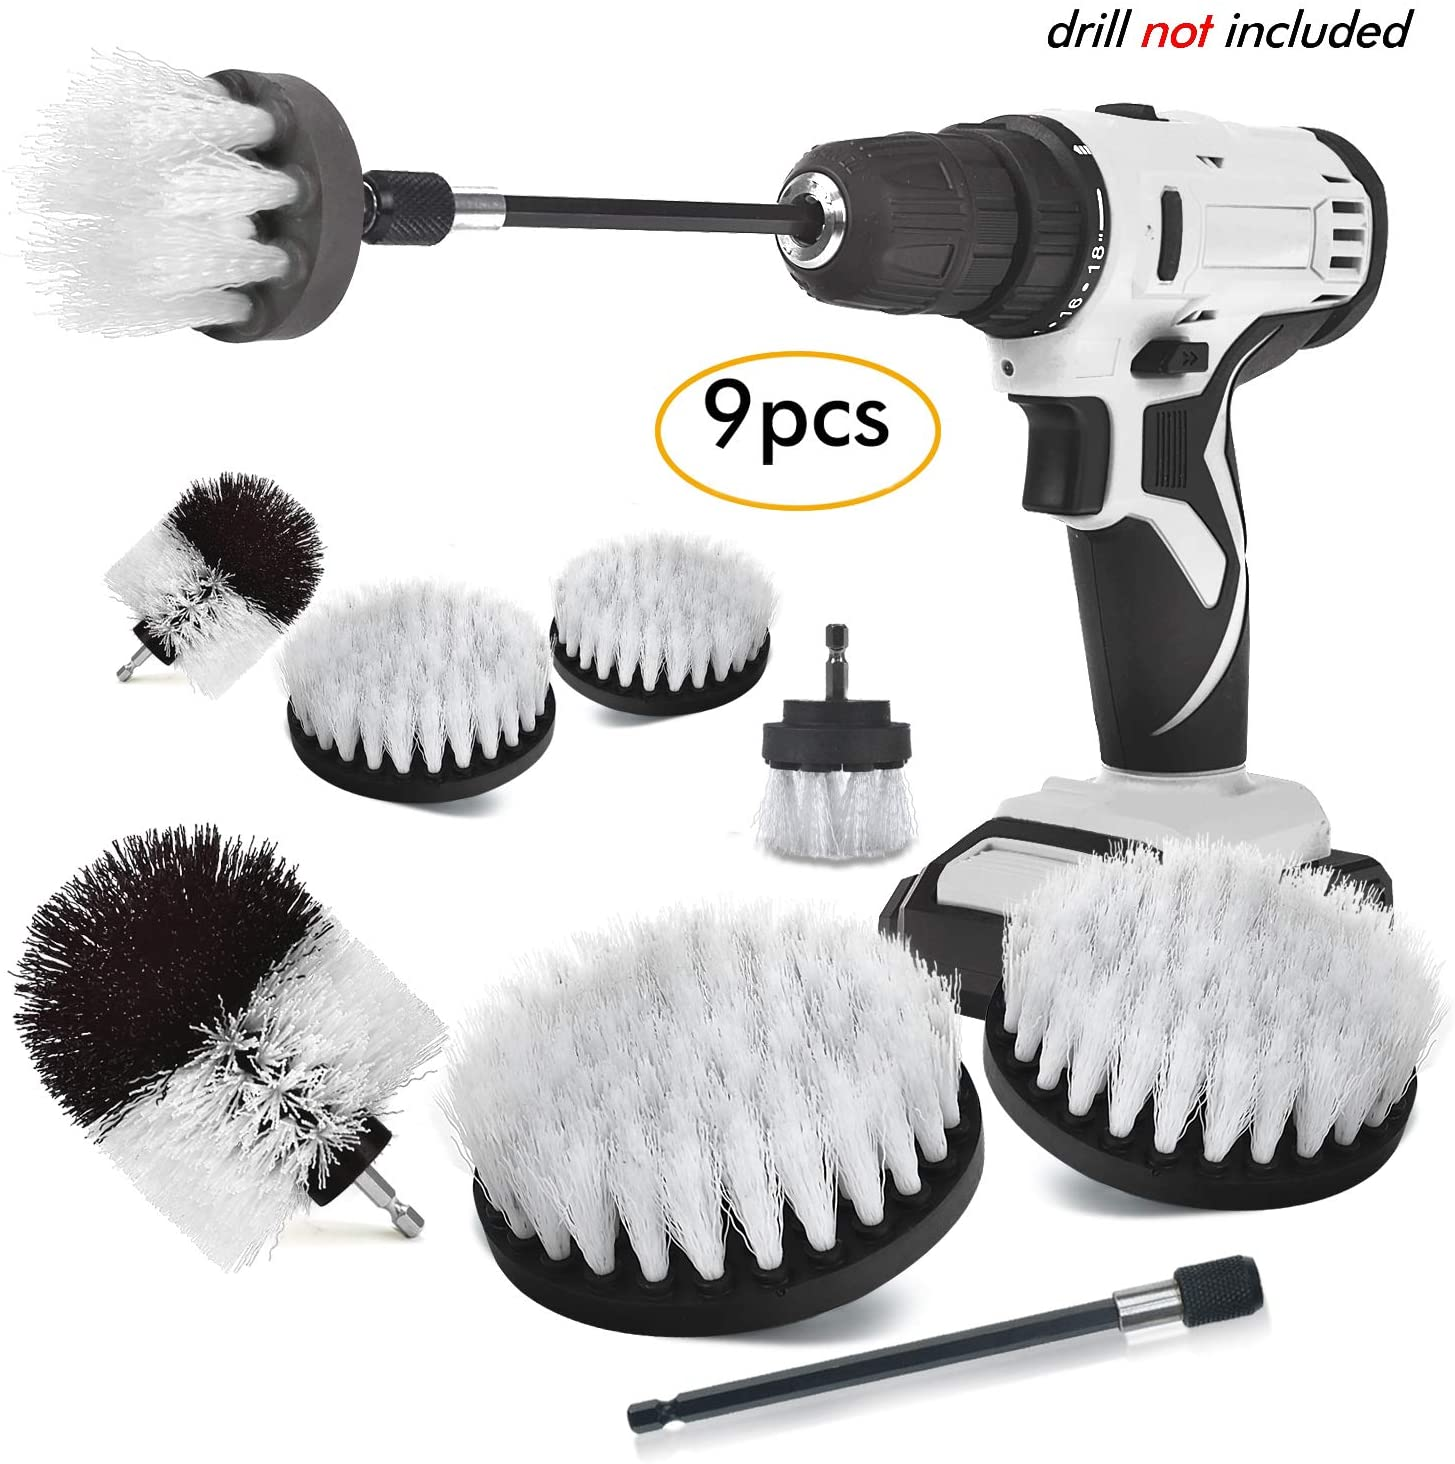 product image of SHIELDPRO Brush Drill Attachment Set